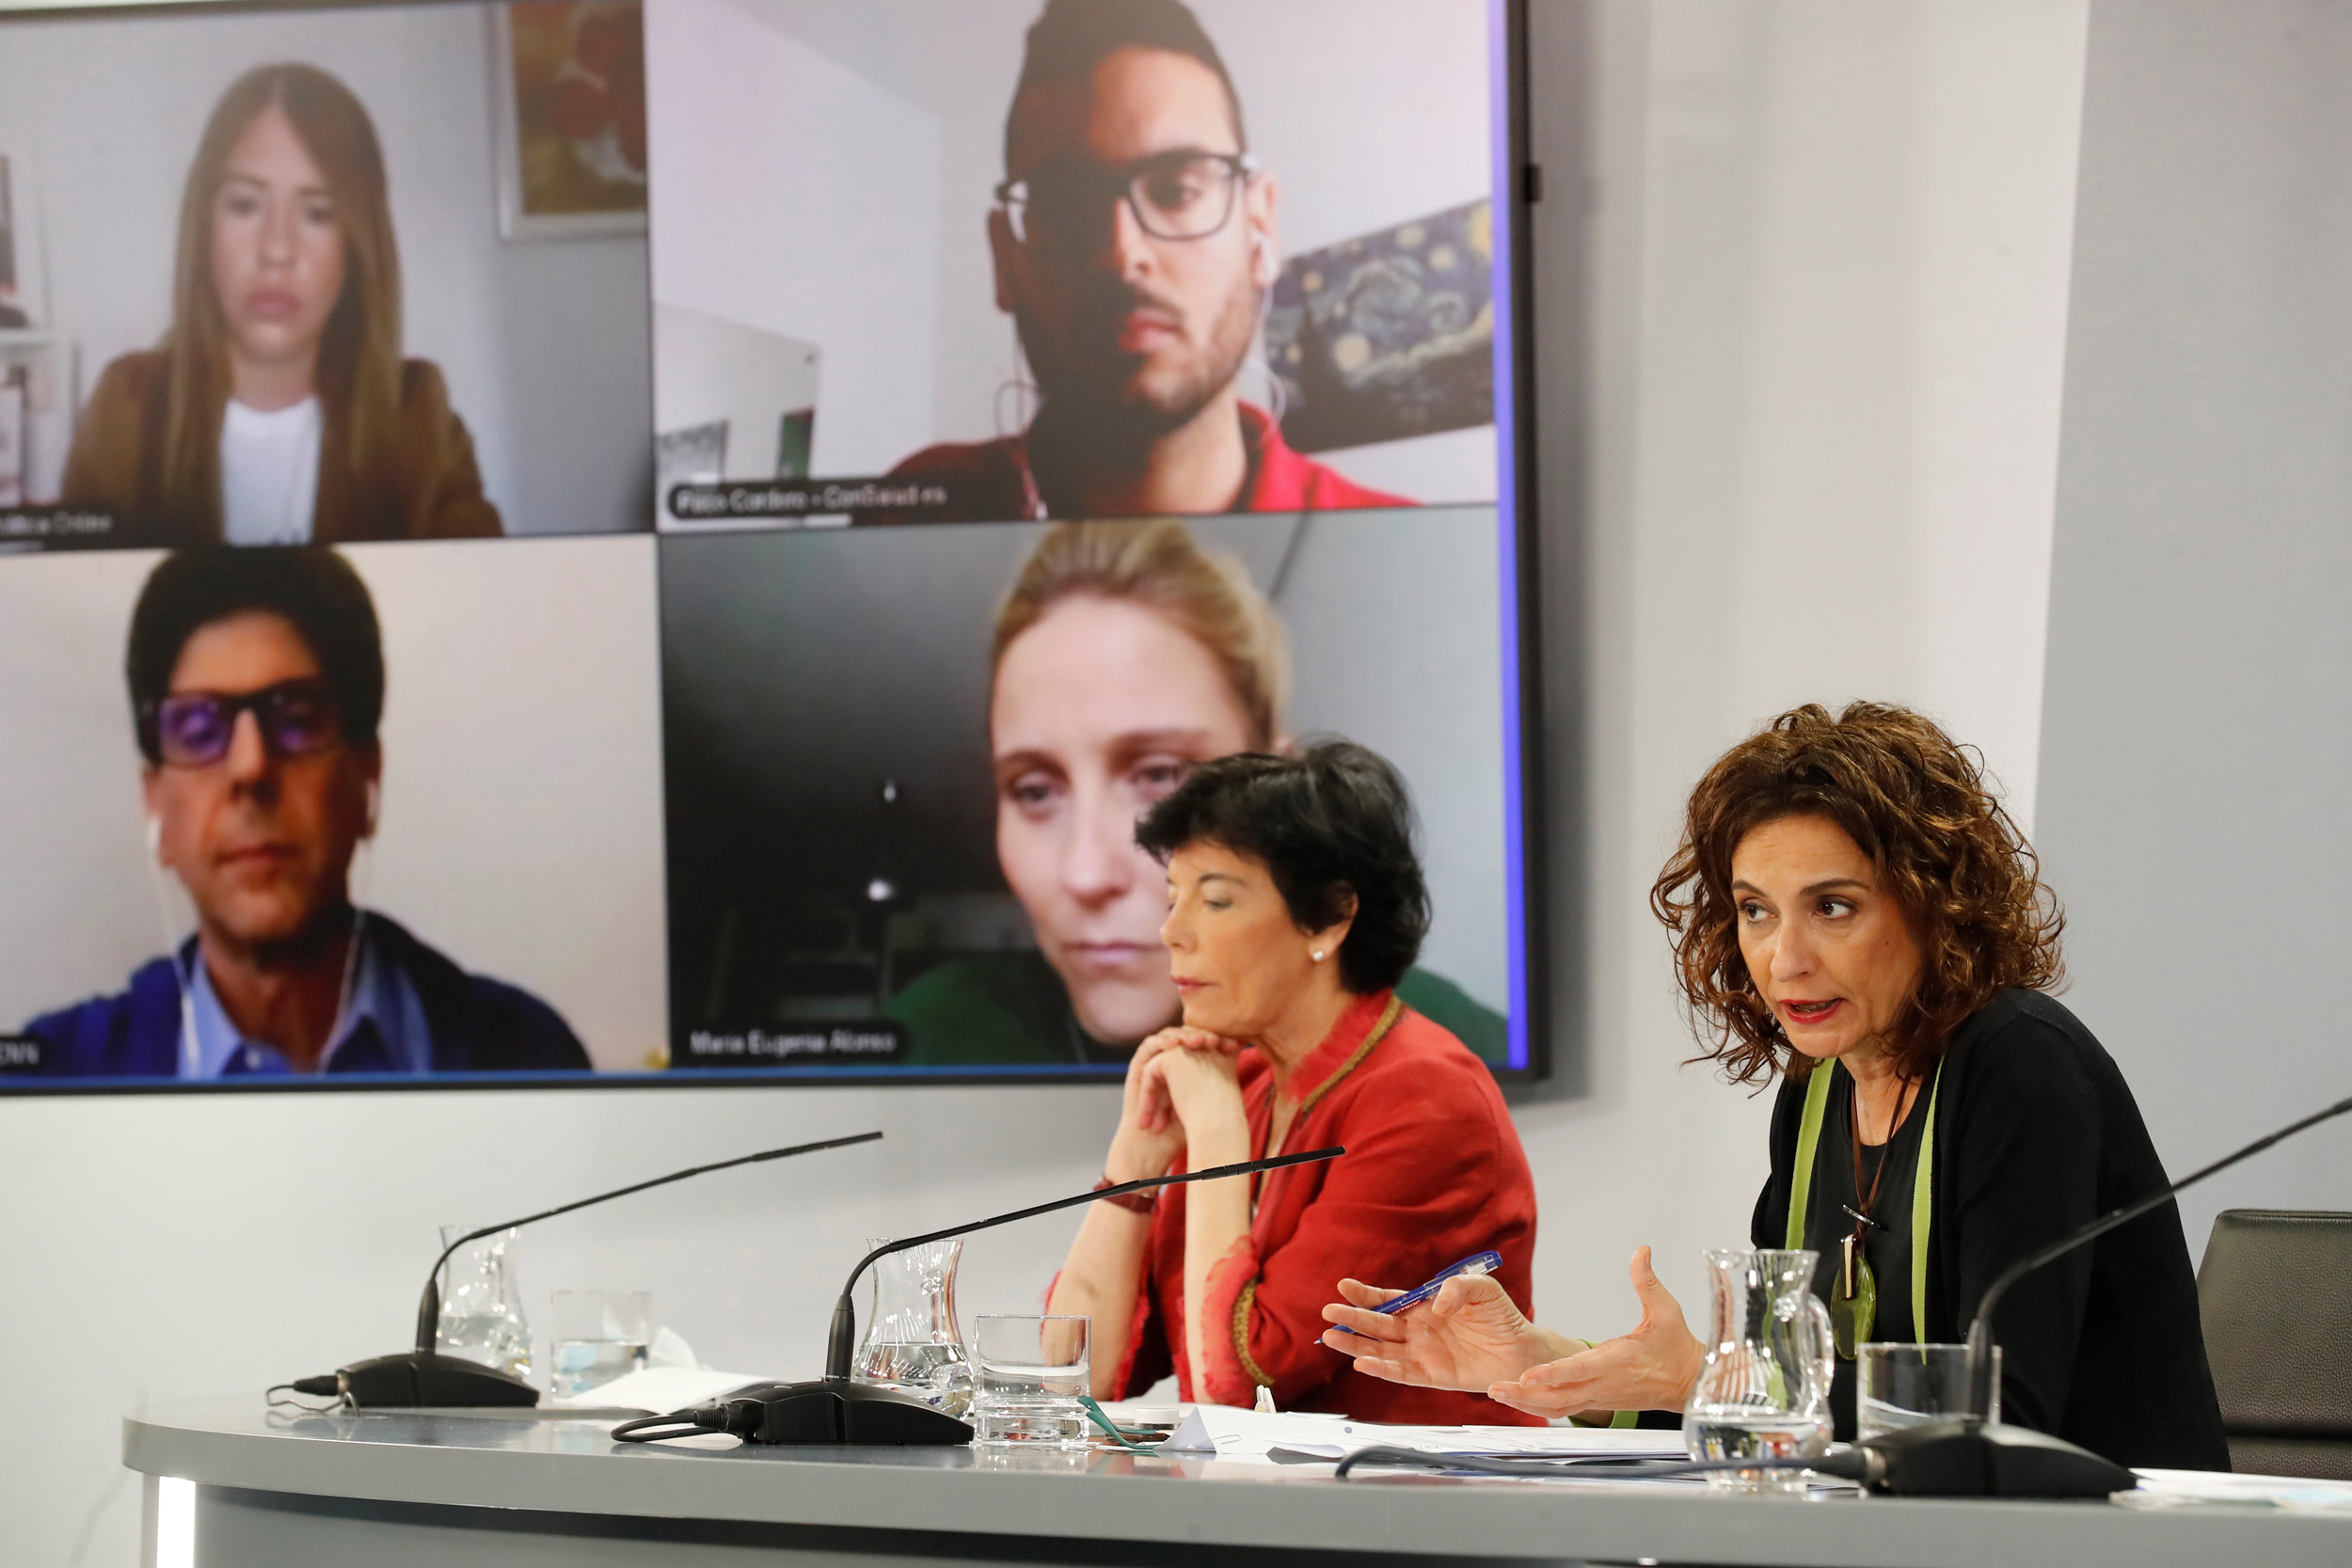 Spanish Education Minister Isabel Celaa, left, and Treasury Minister and Government's spokeswoman Maria Jesus Montero address a press conference after the weekly Cabinet Meeting held at Moncloa Palace in Madrid on June 16.